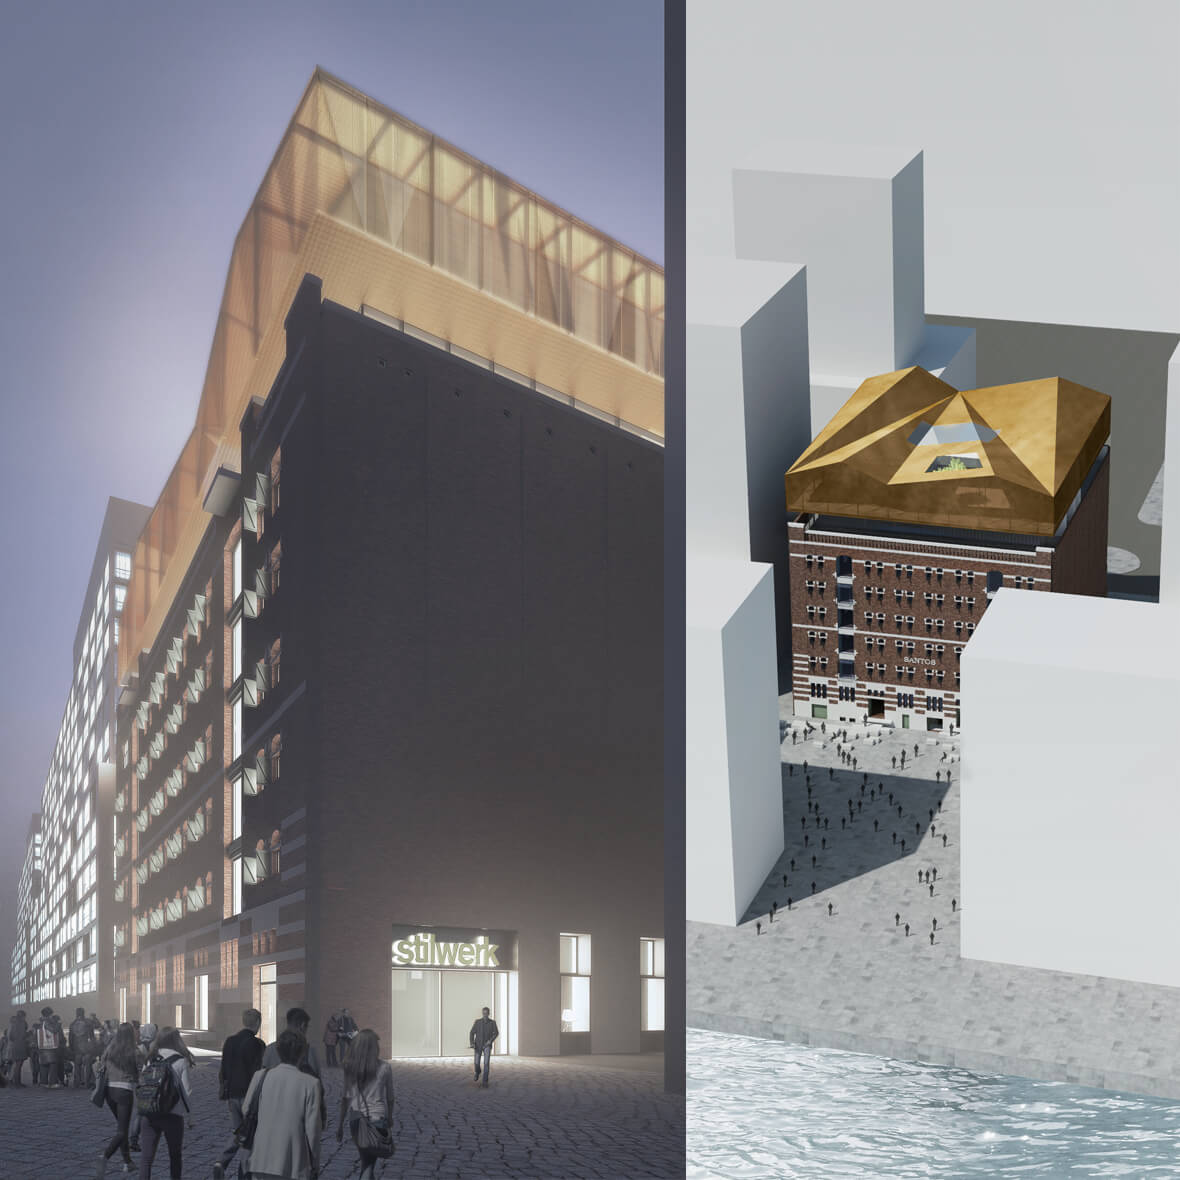 stilwerk_recycled_architecture_hospitality_santos_rotterdam_page_03